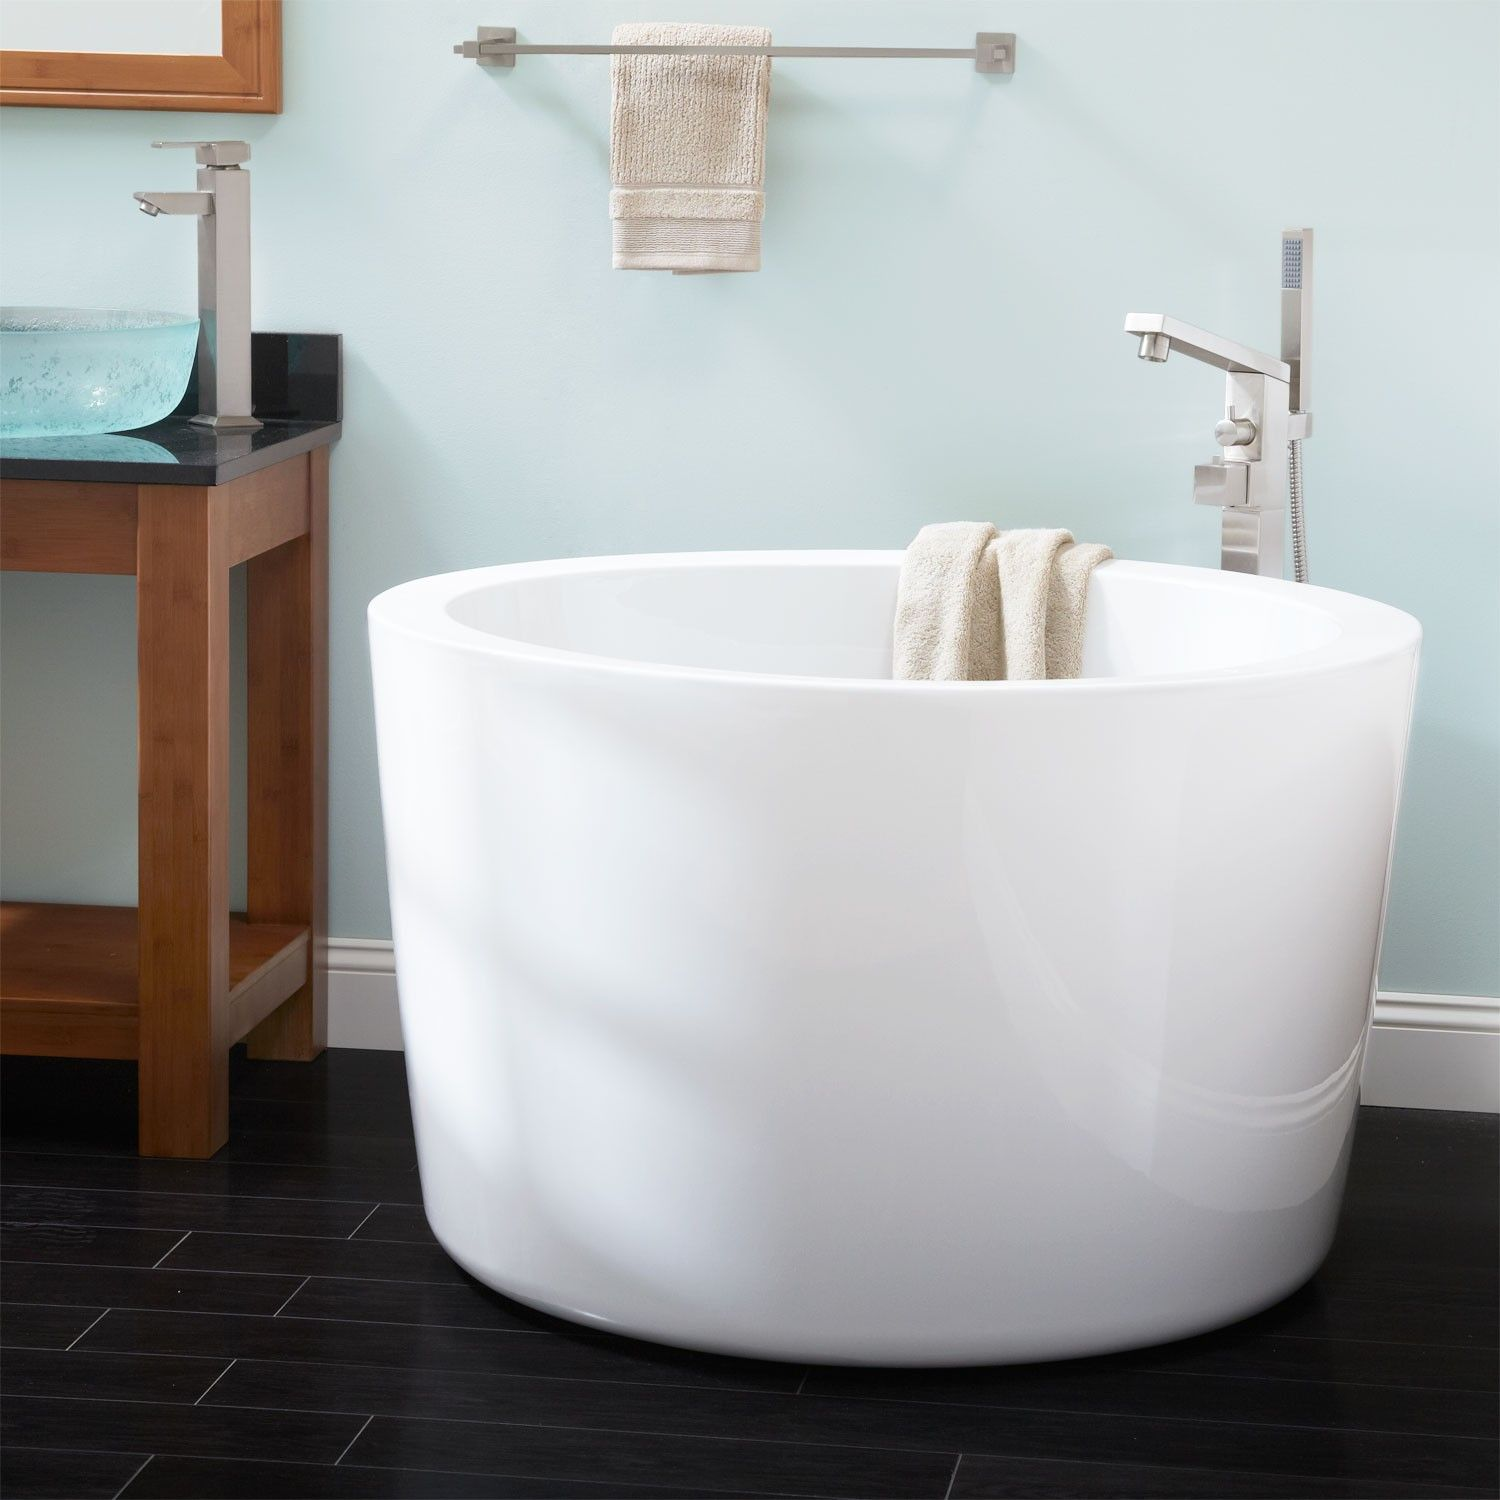 41 Siglo Round Japanese Soaking Tub Japanese Soaking